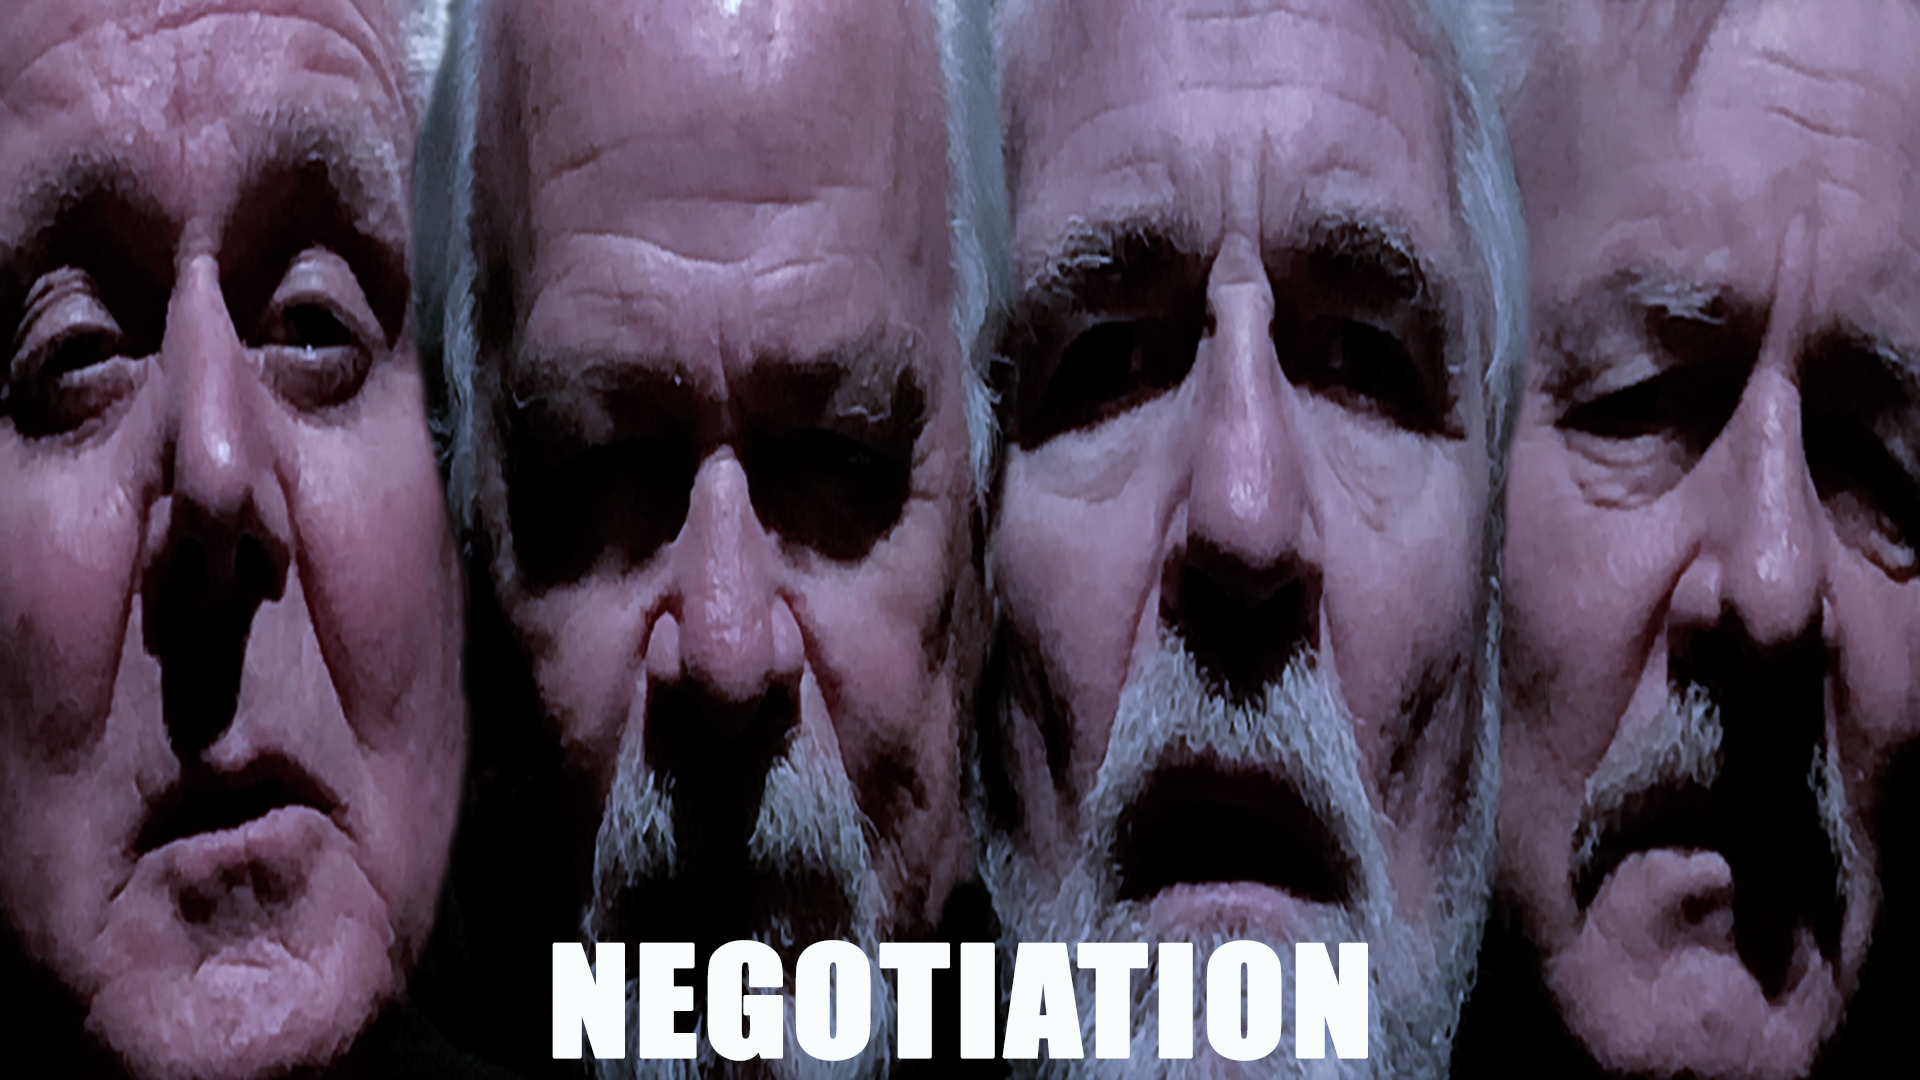 Negotiation - Short Film by Sean Dillingham